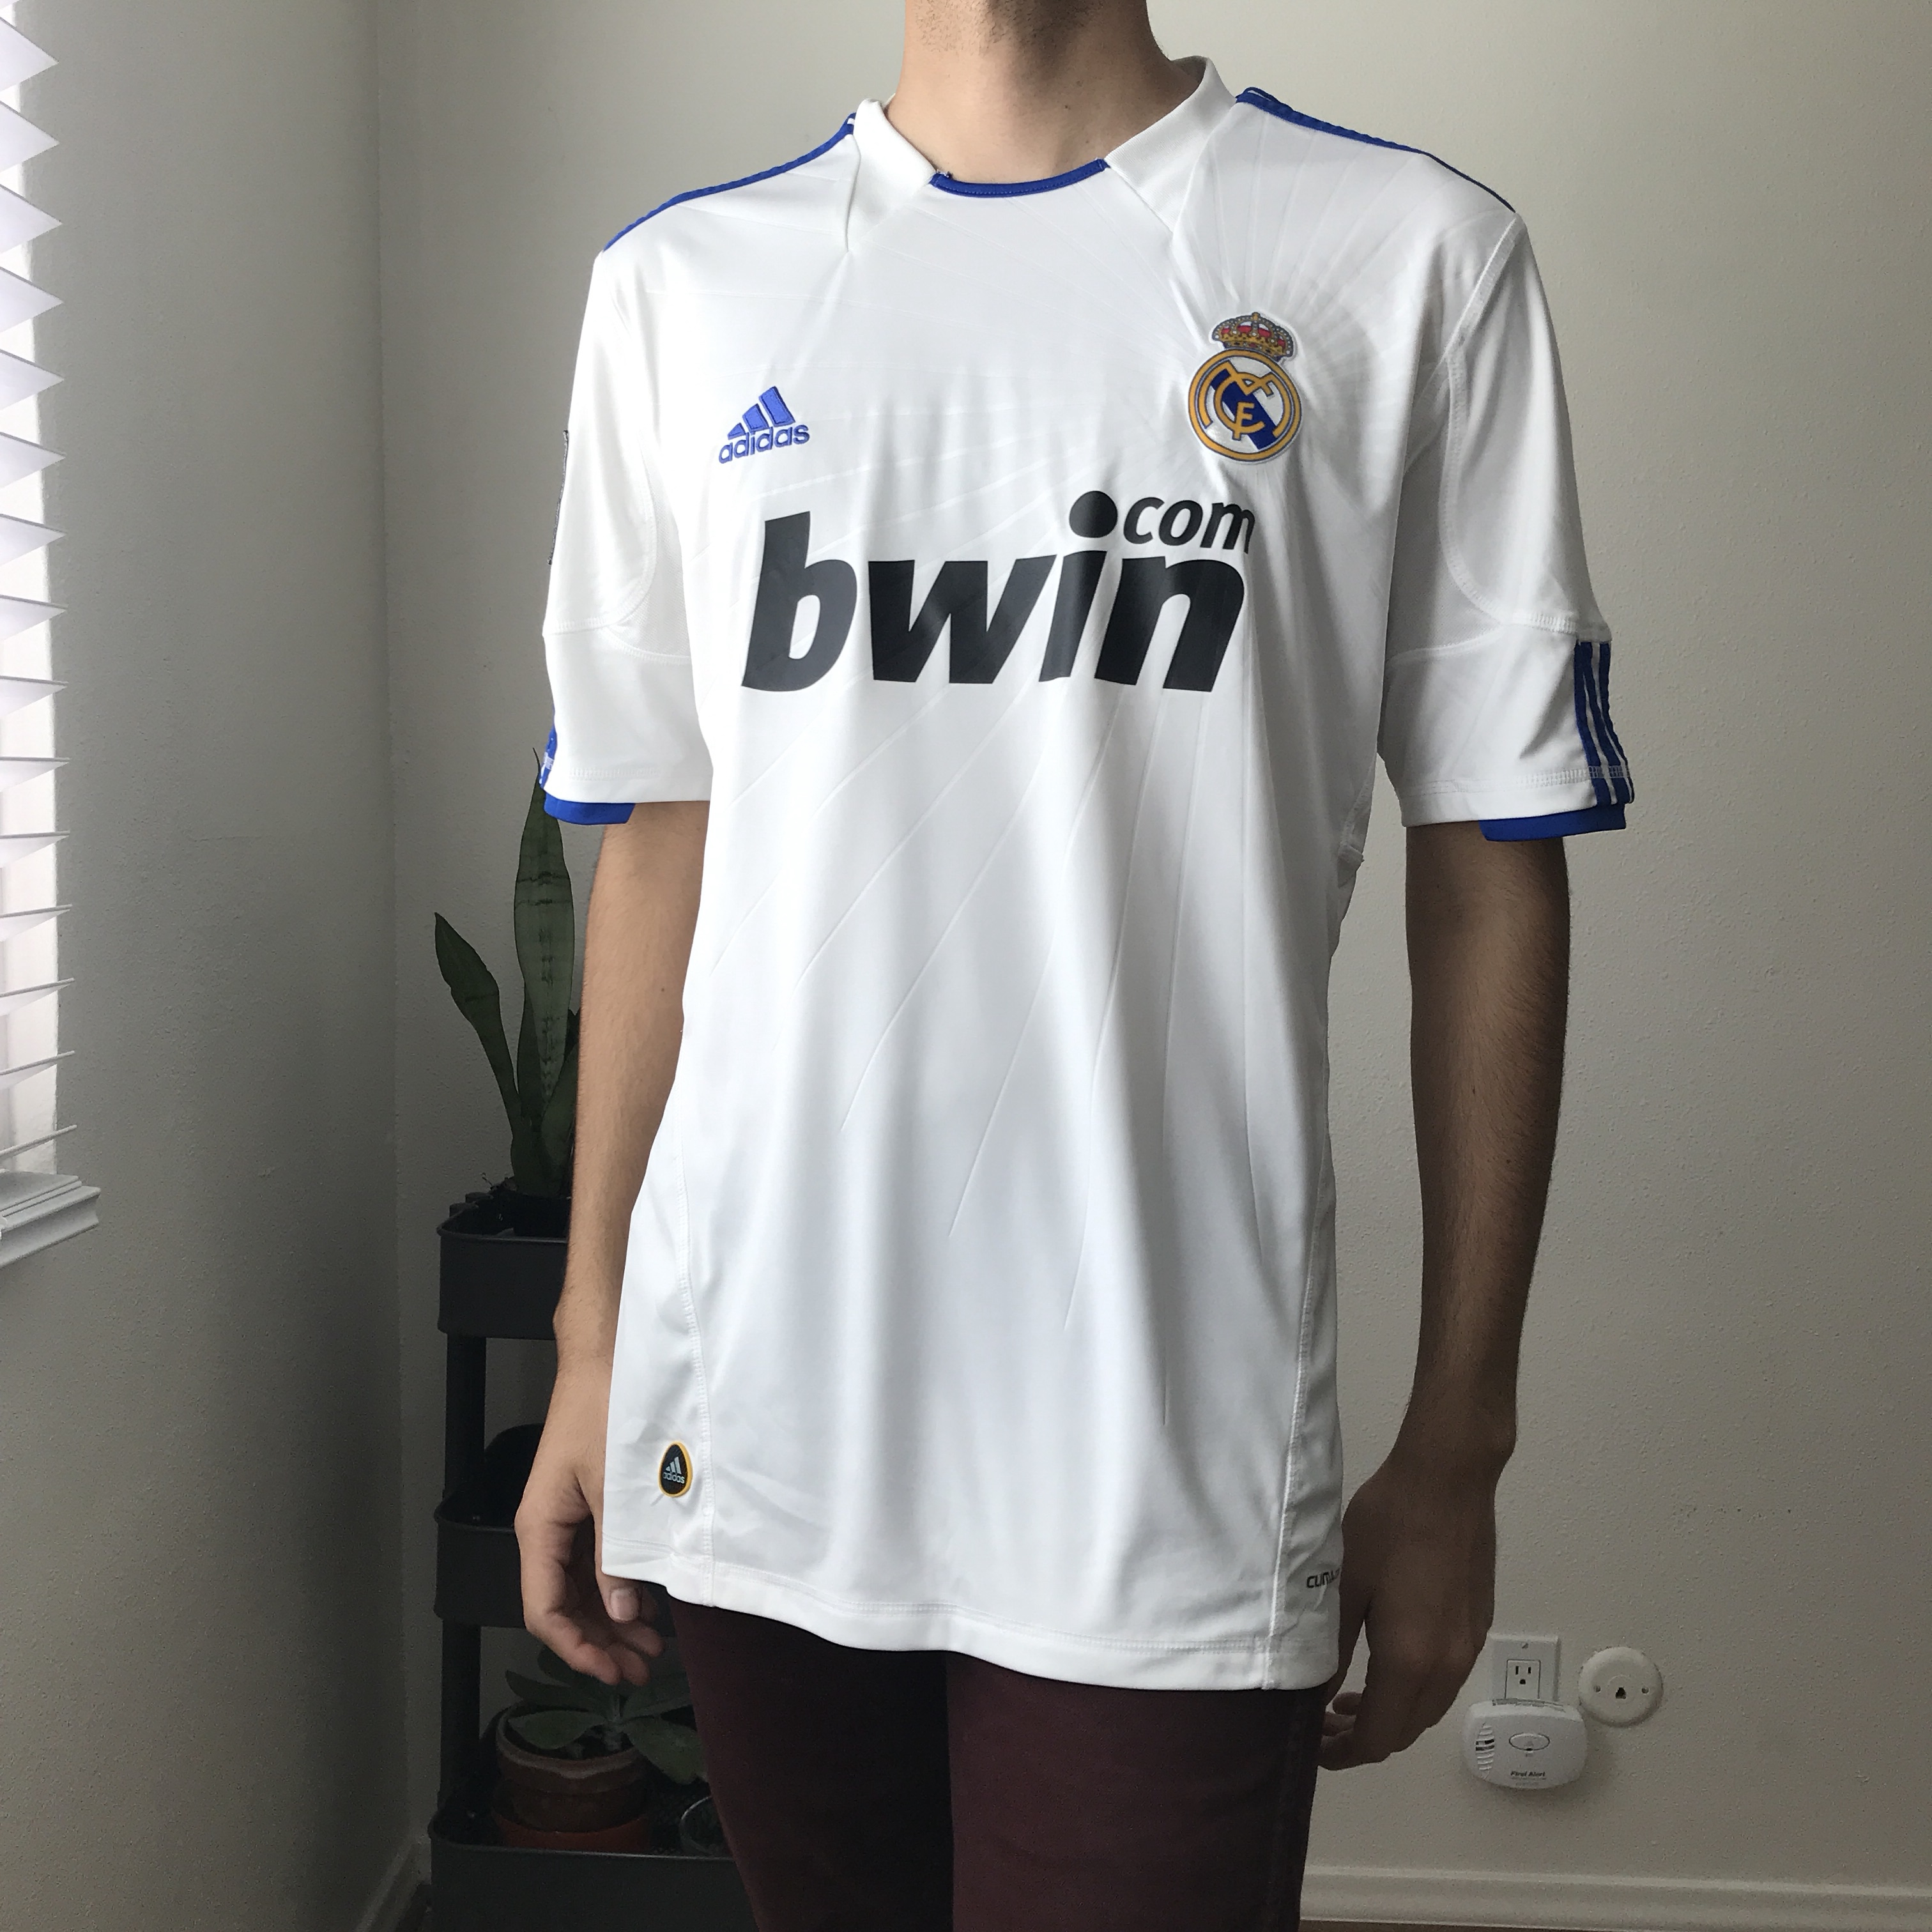 reputable site 5a59c e0aea Real Madrid jersey from 2010-2011 season! This is... - Depop